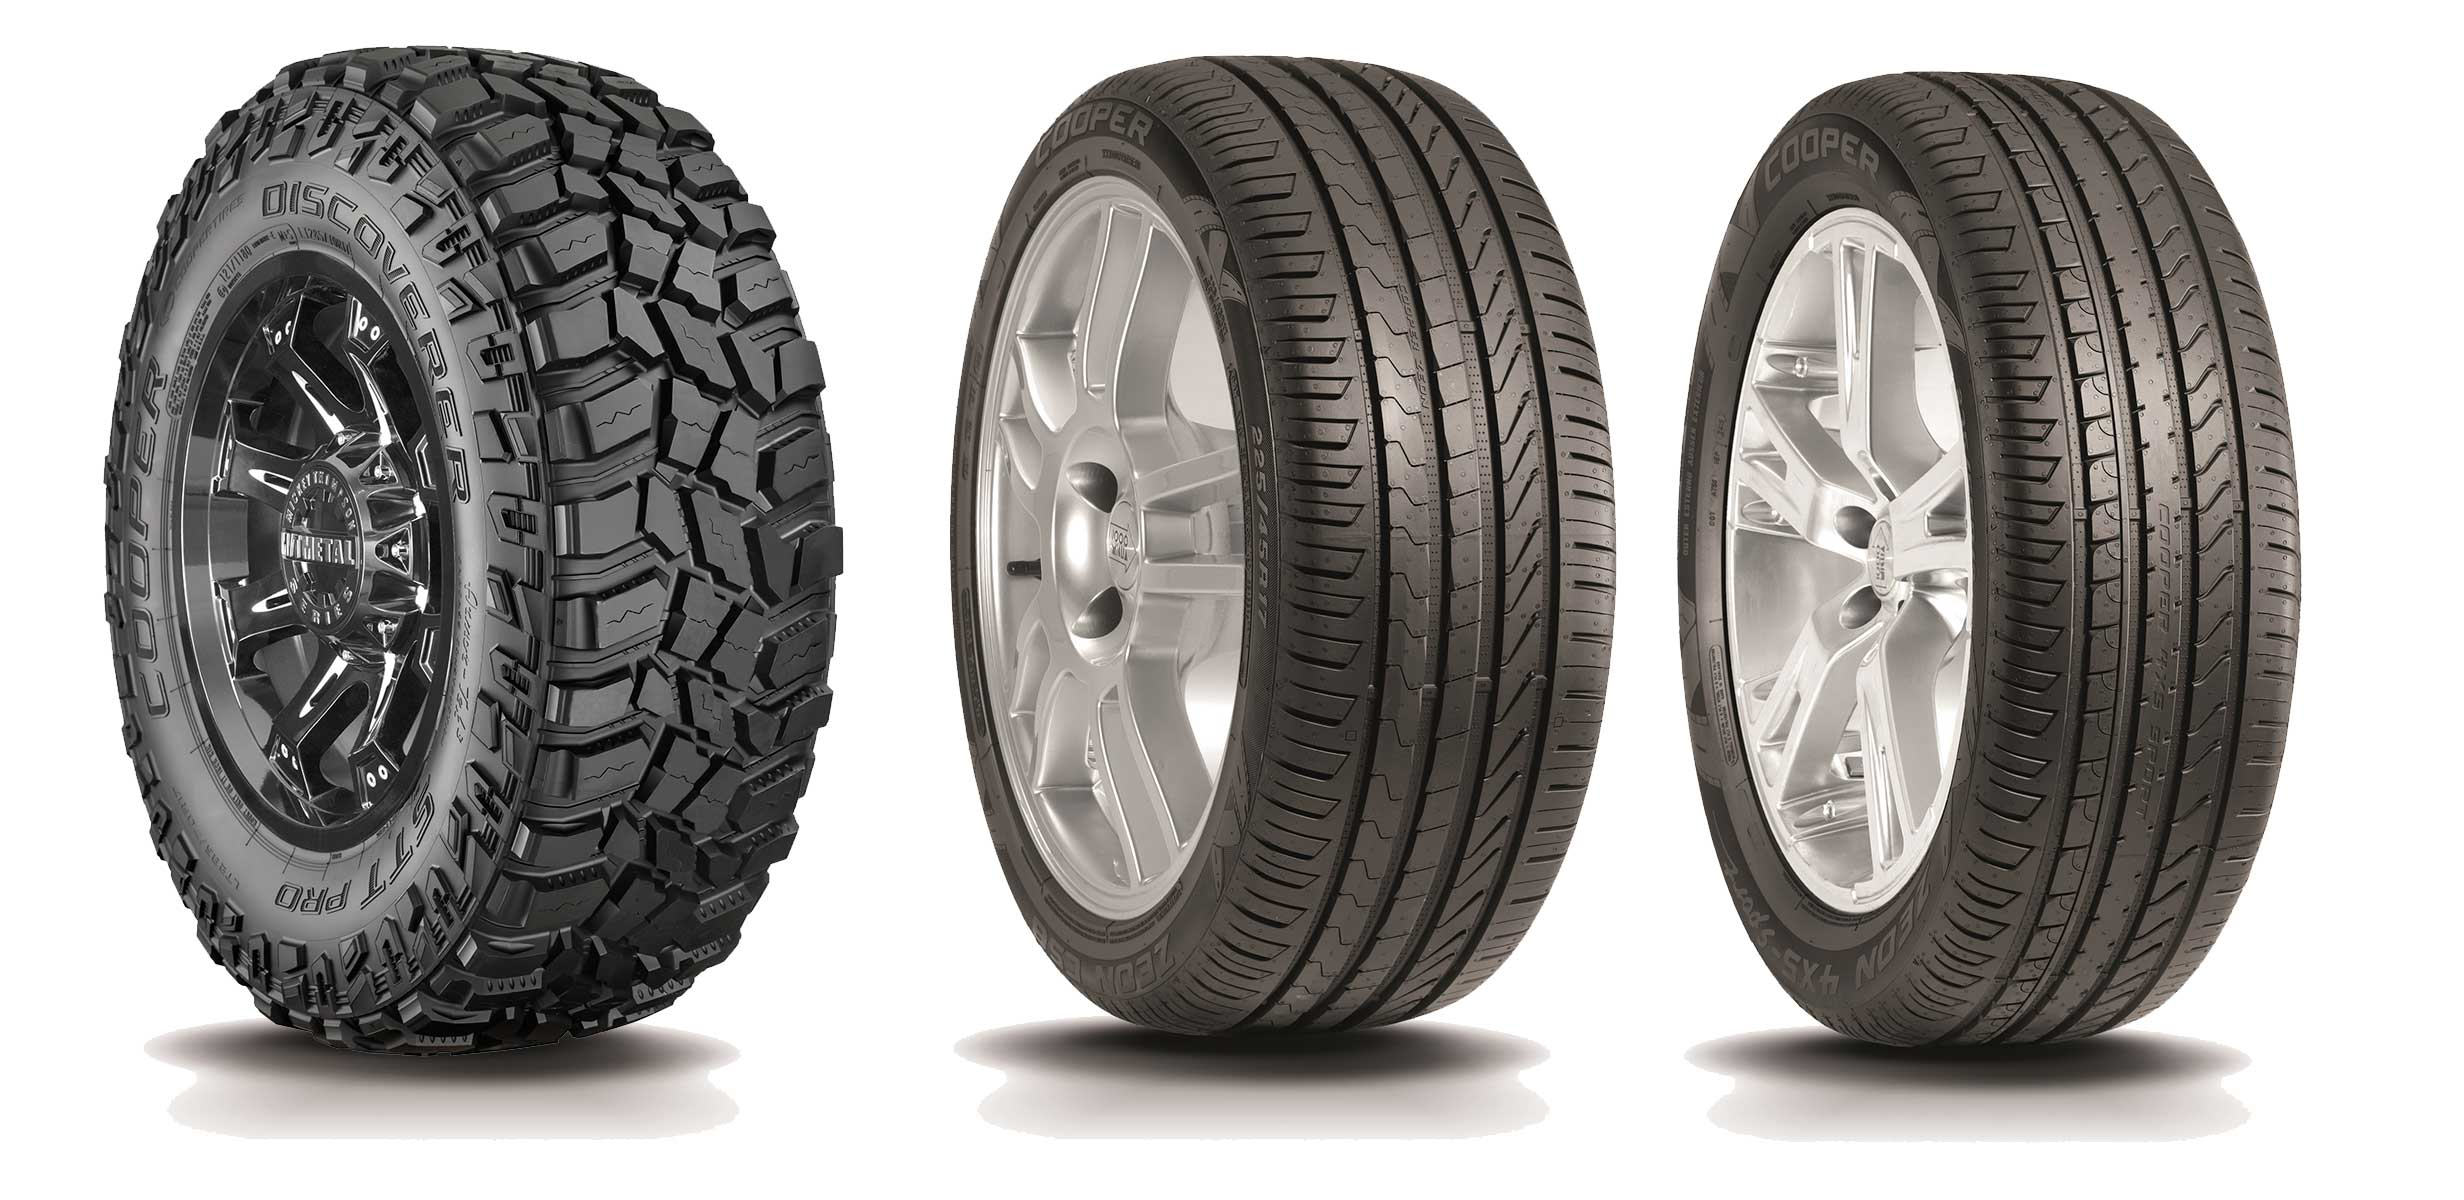 Cooper Tire Europe Appoints New Distributor for Saudi Arabia Market